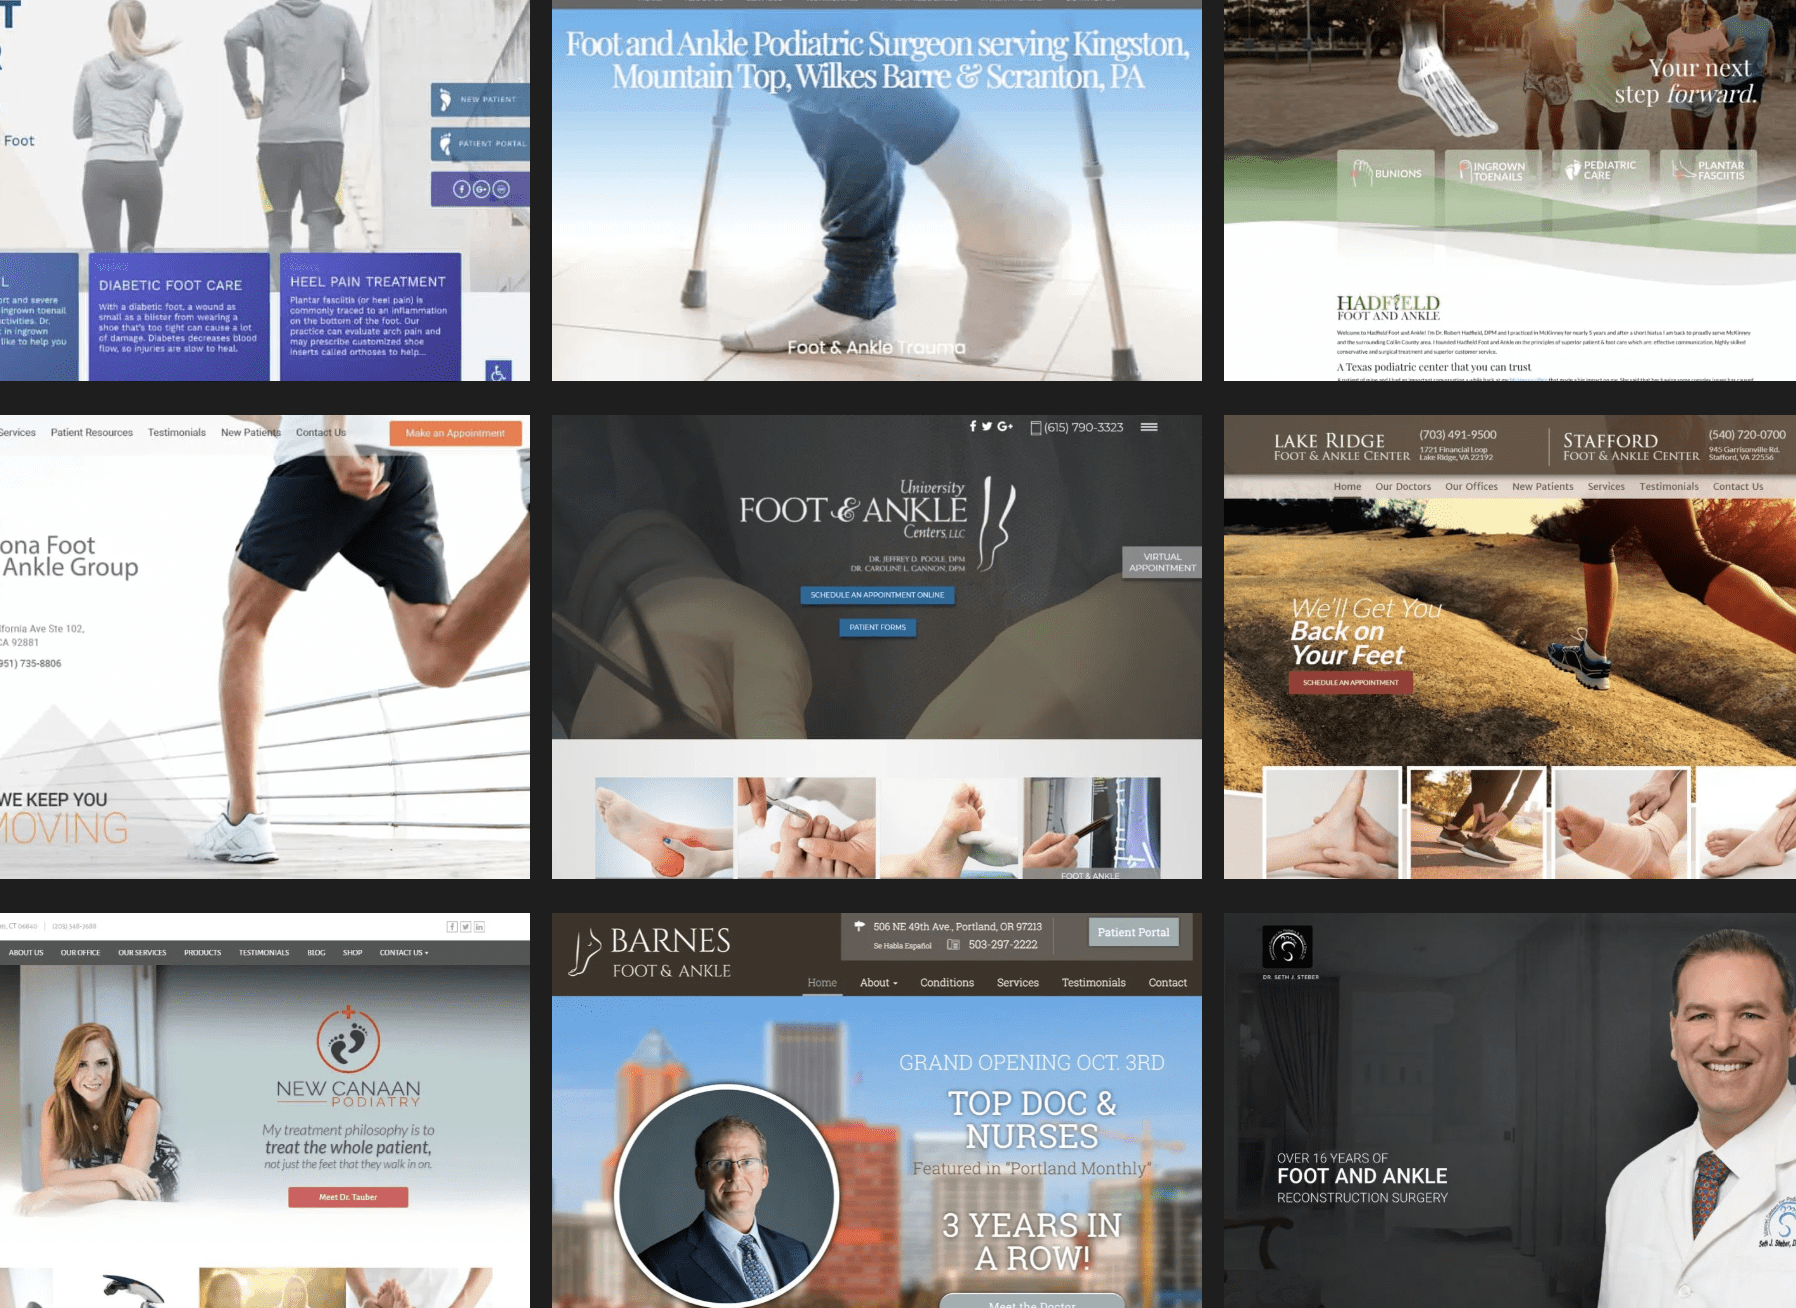 Foot And Ankle Specialists Colage Of Websites